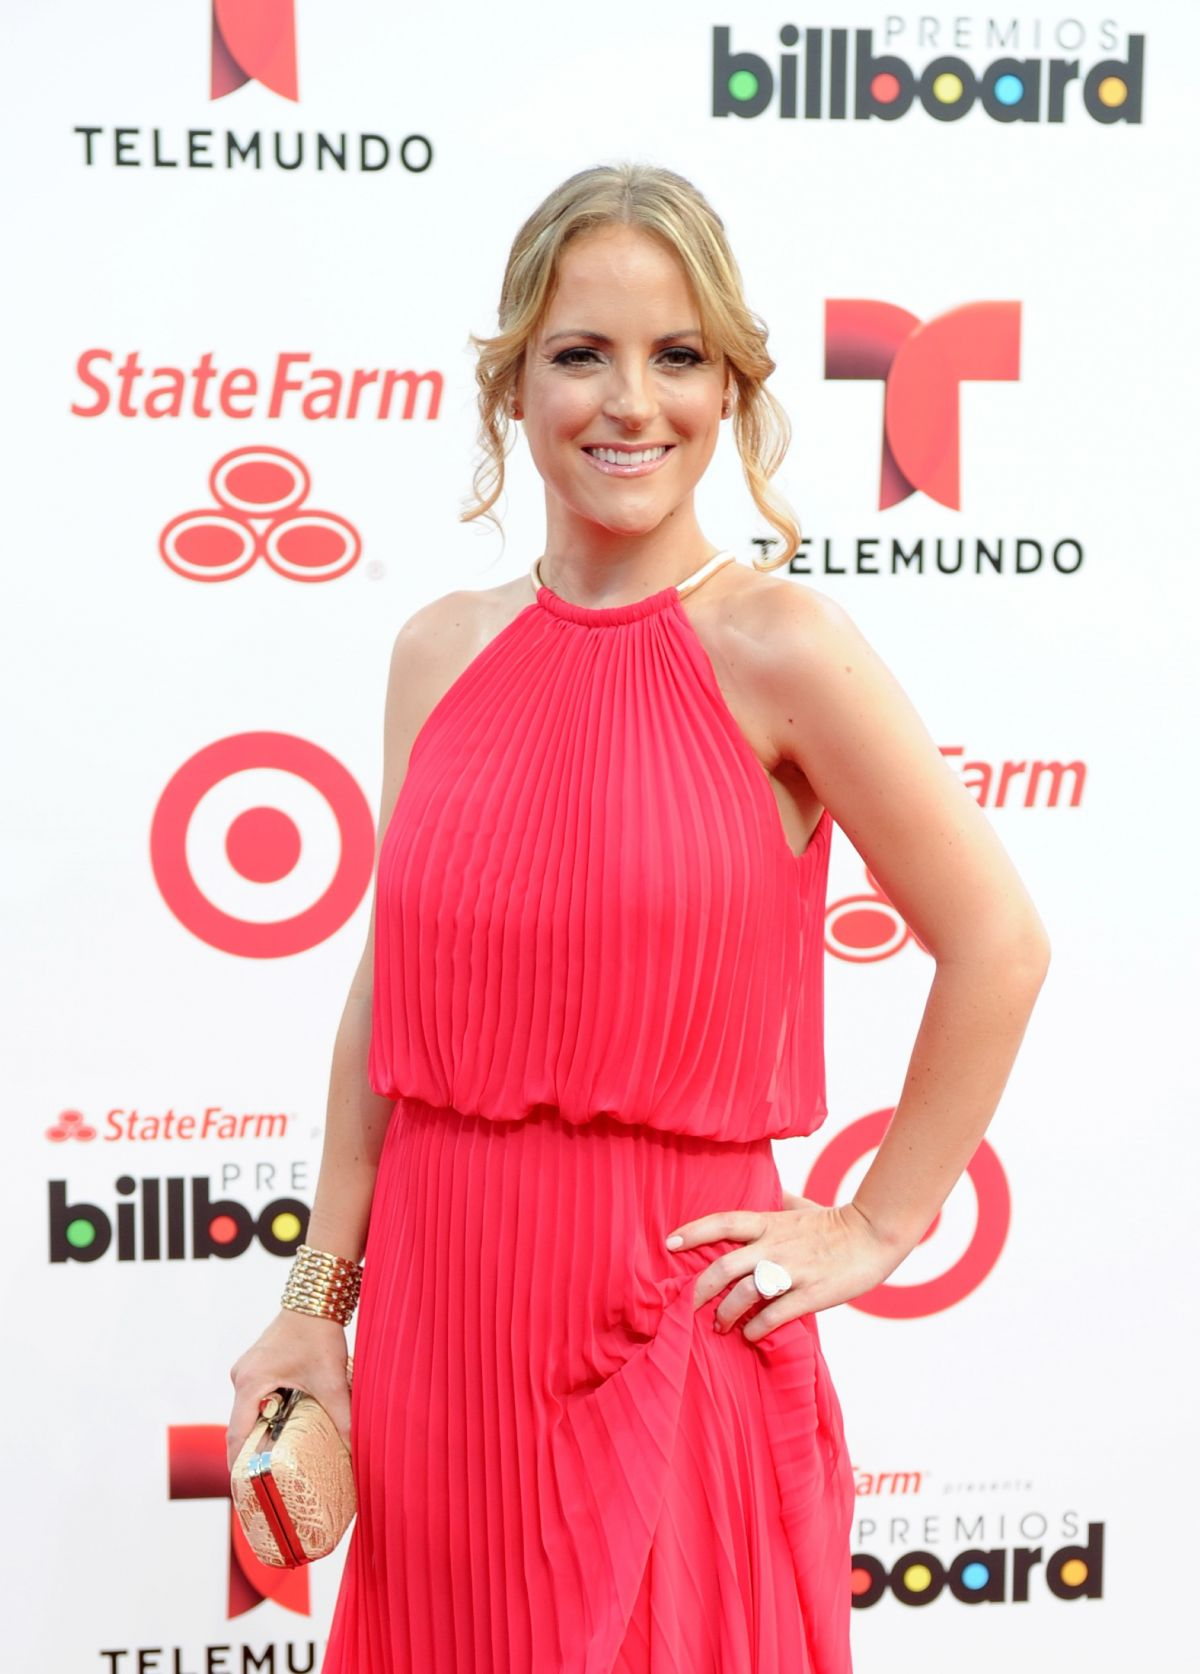 PALOMA MARQUEZ at 2014 Billboard Latin Music Awards in Miami